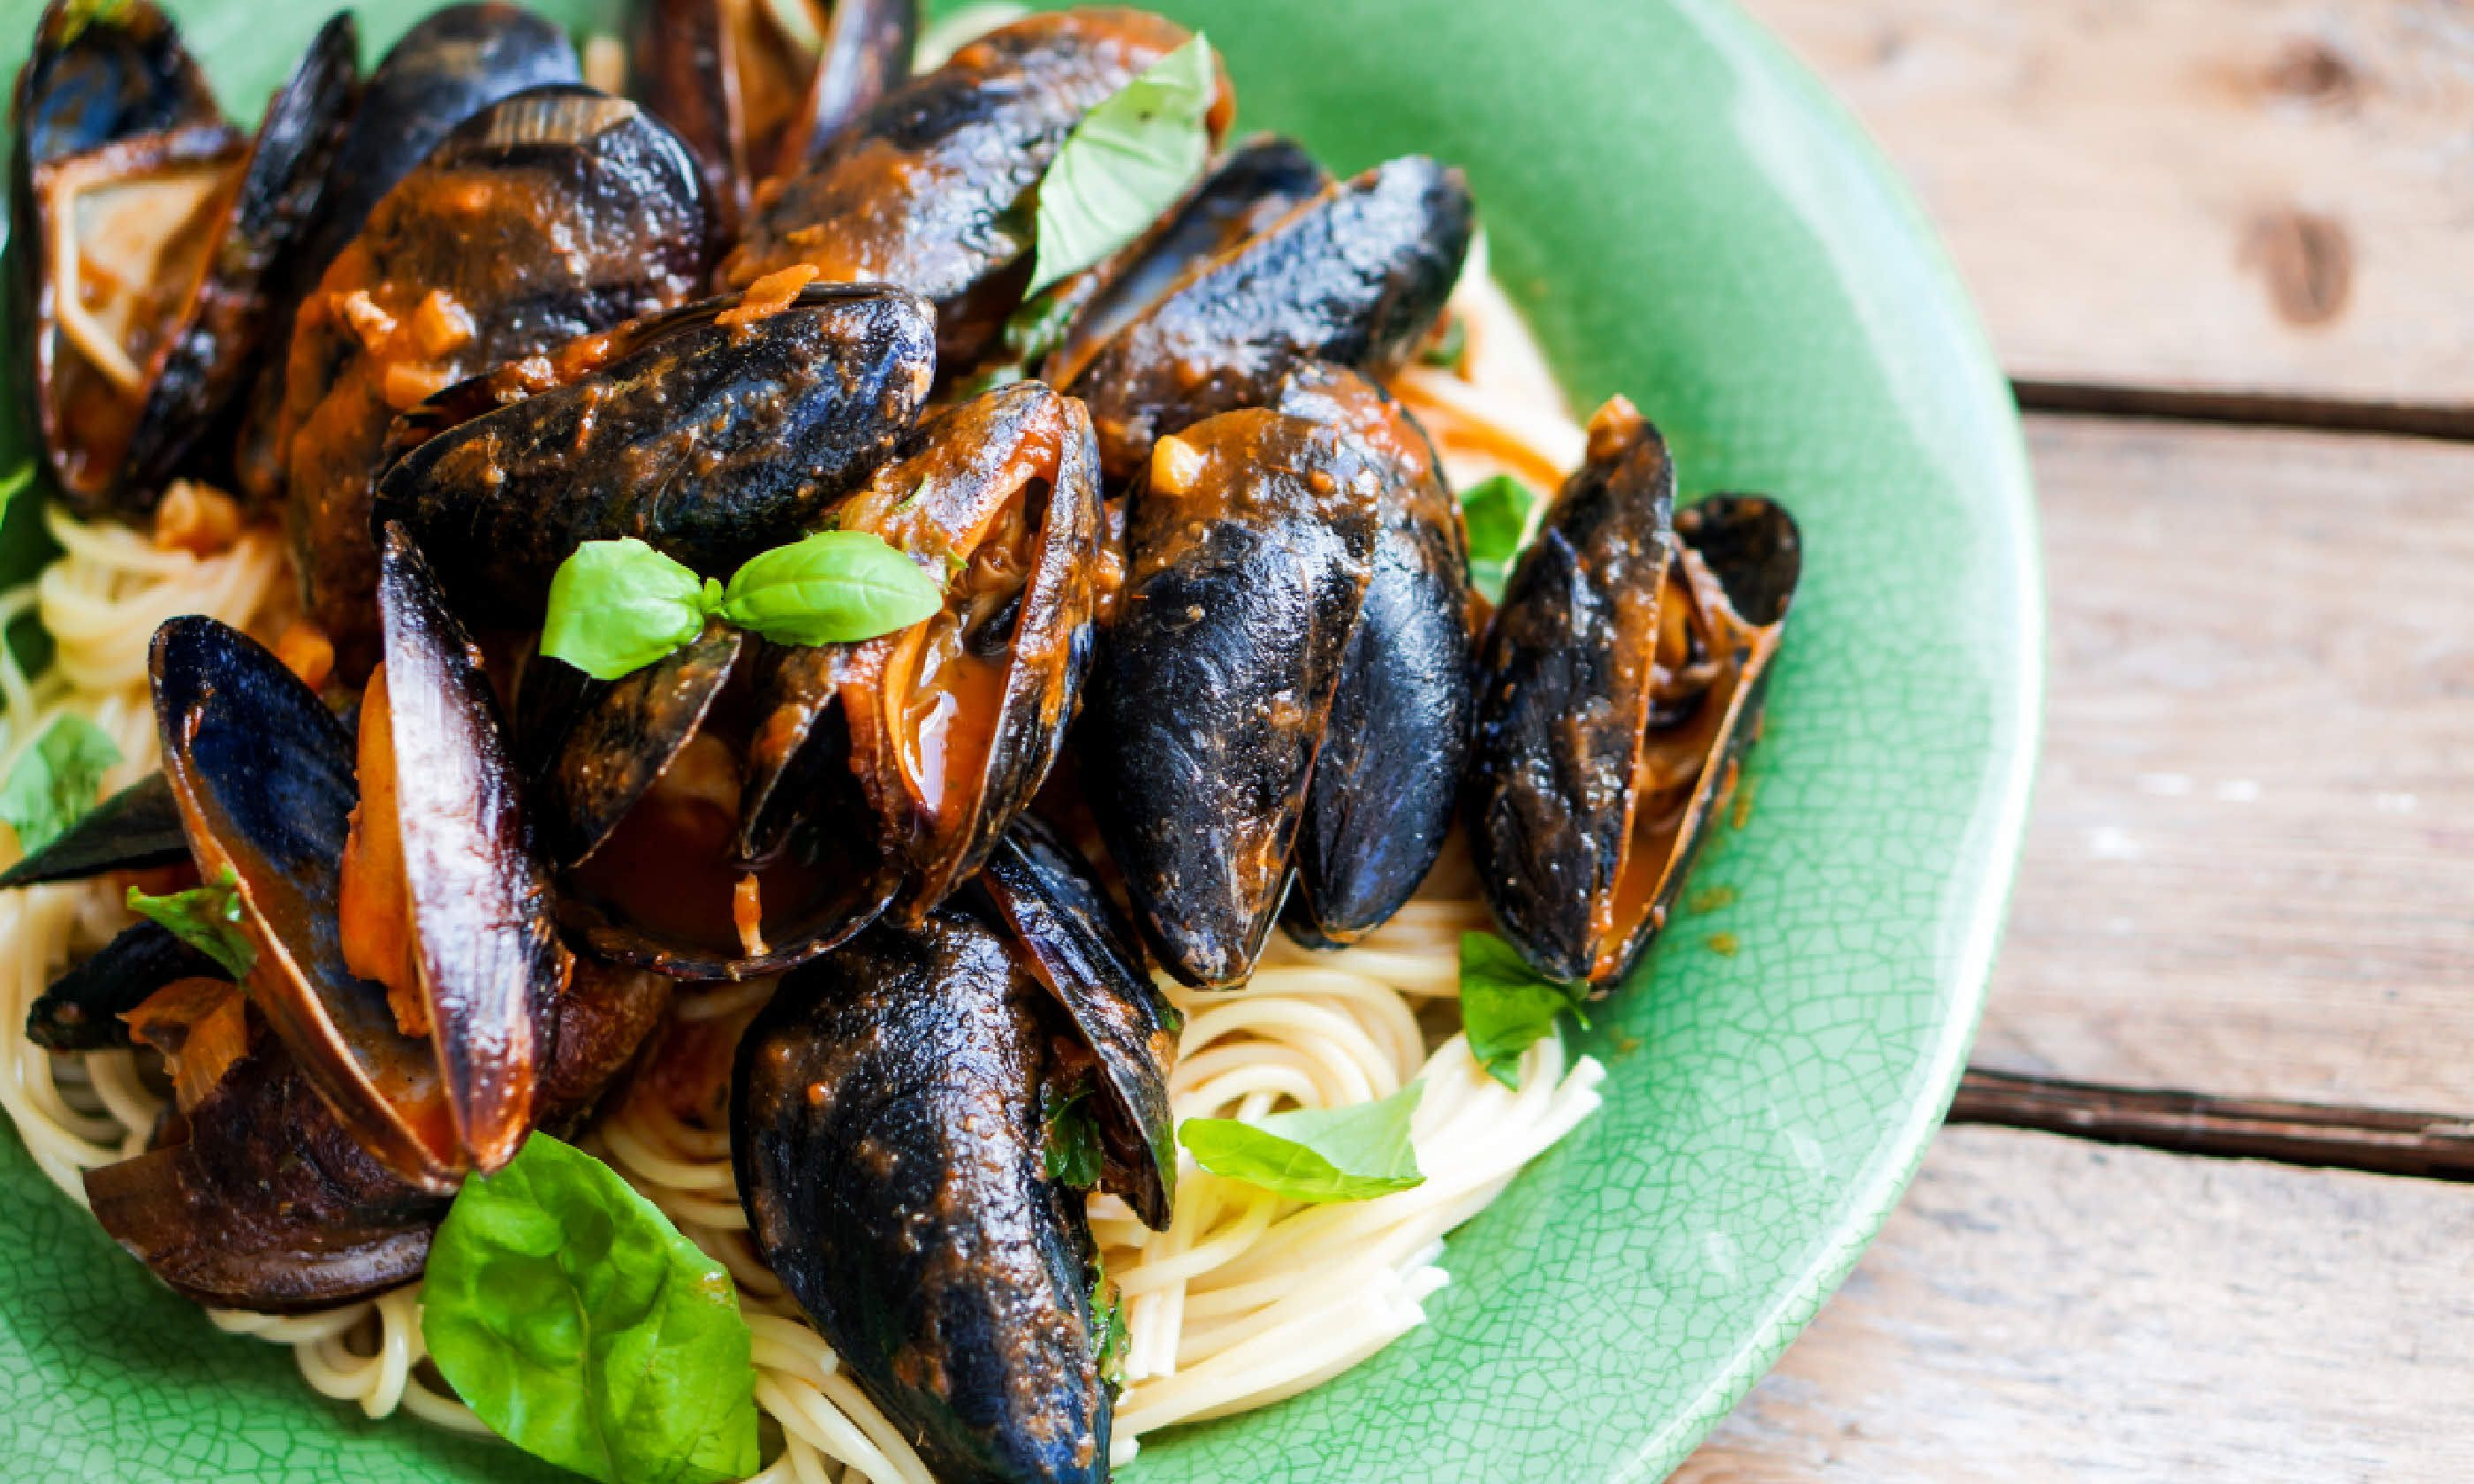 Pasta with mussels and basil (Shutterstock)